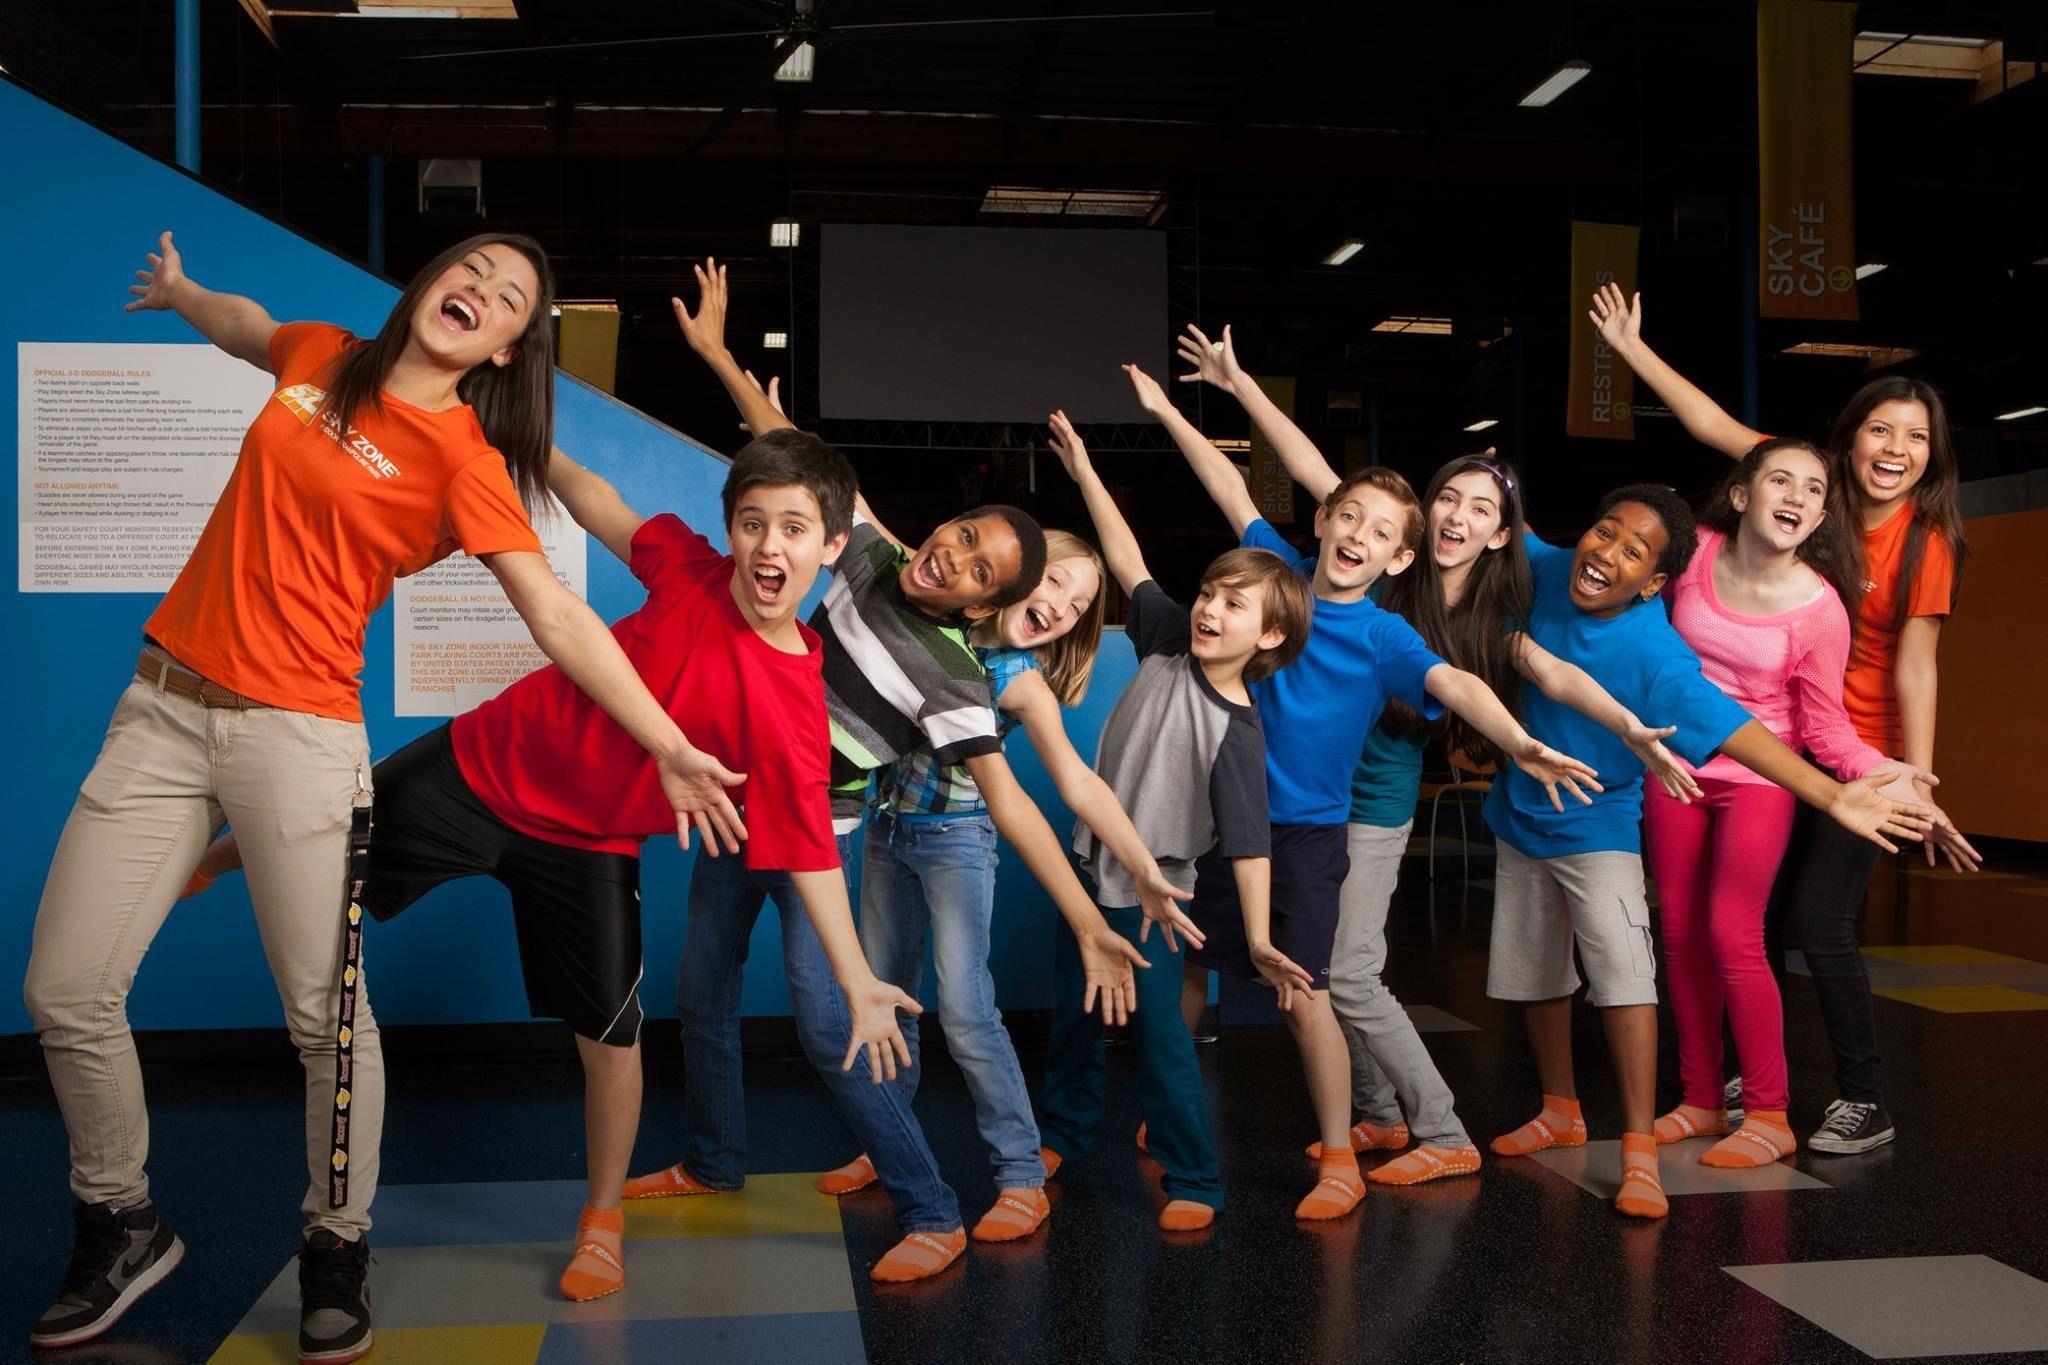 Jump over to Sky Zone this Sunday for our BACK TO SCHOOL